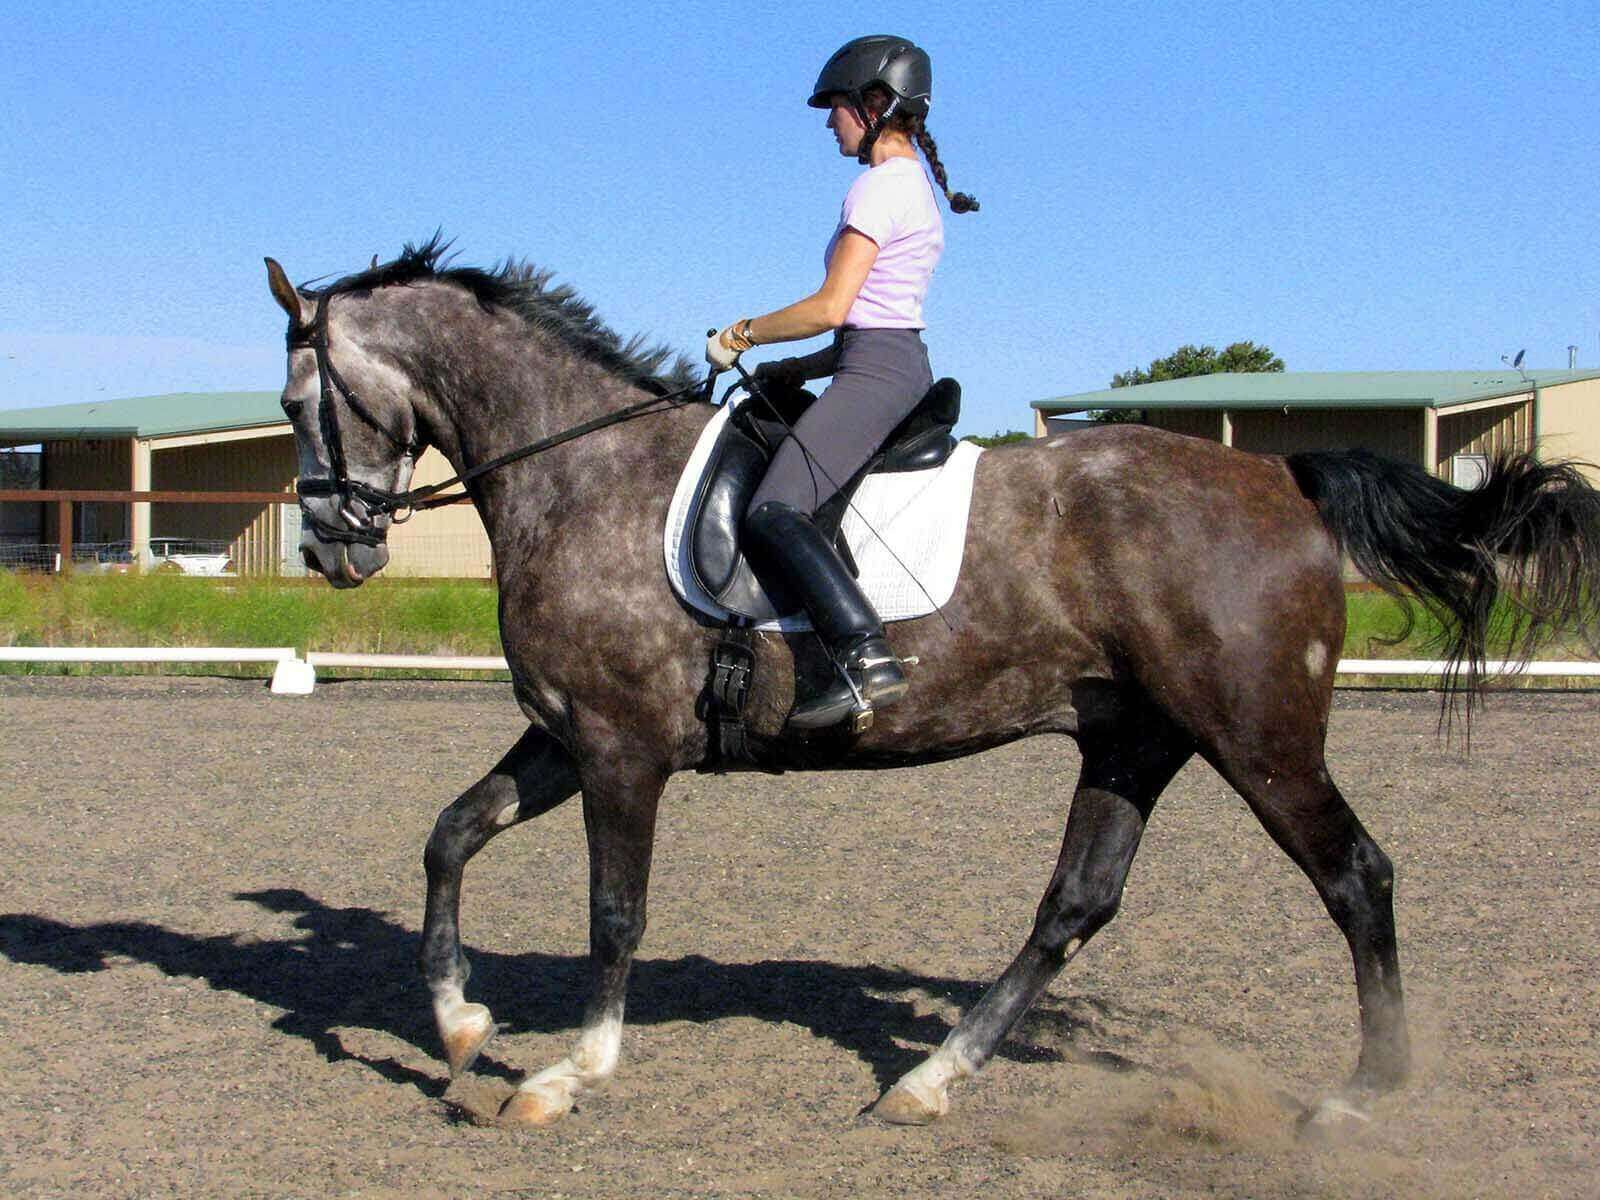 Keene Dressage and horse lessons in Santa Fe, NM